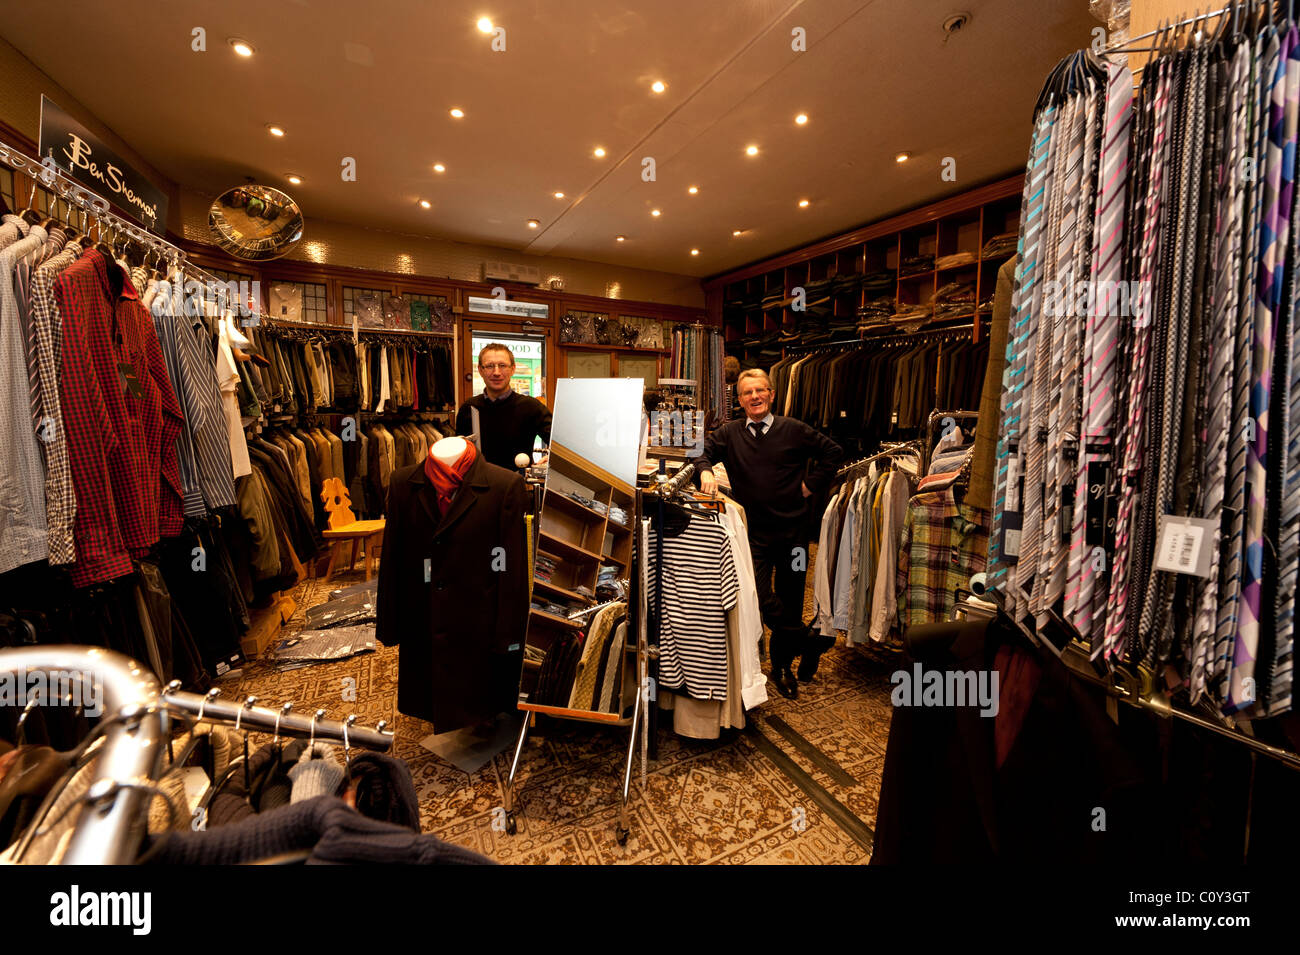 Independent Shop Store Uk High Resolution Stock Photography And Images Alamy